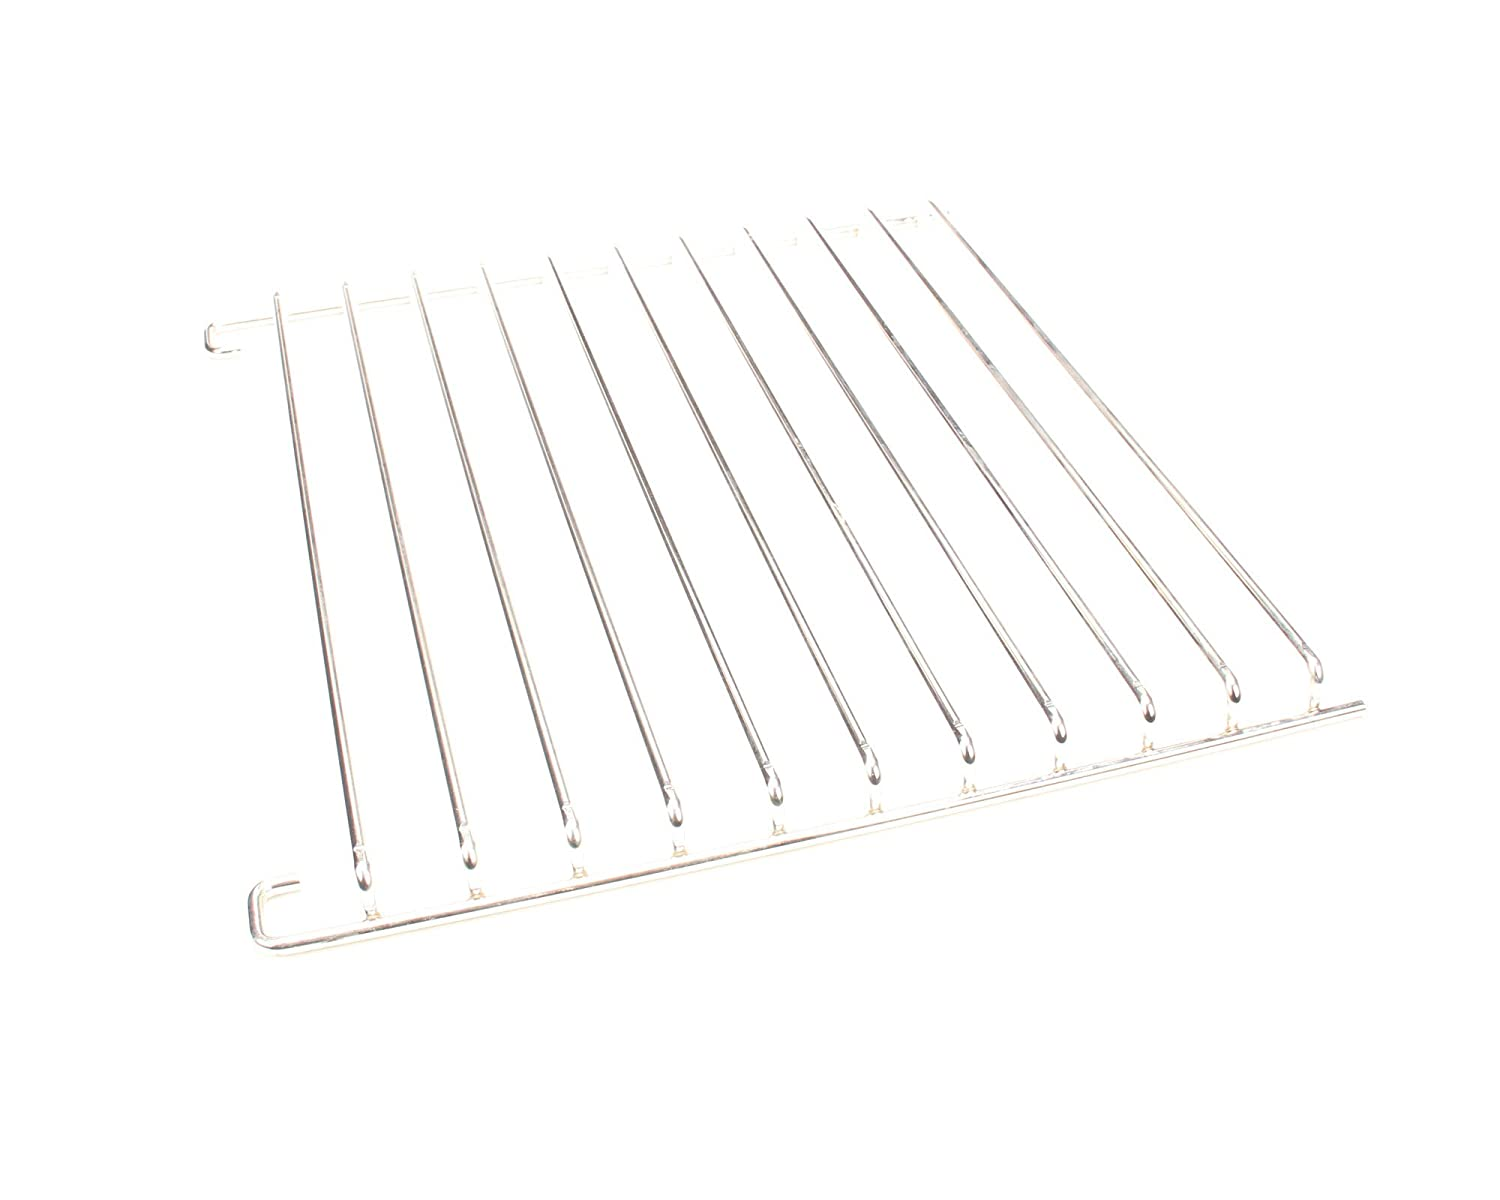 Image of Blodgett Oven 18769 Rack Support, 19' x 20', Chrome Commercial Cooking Equipment